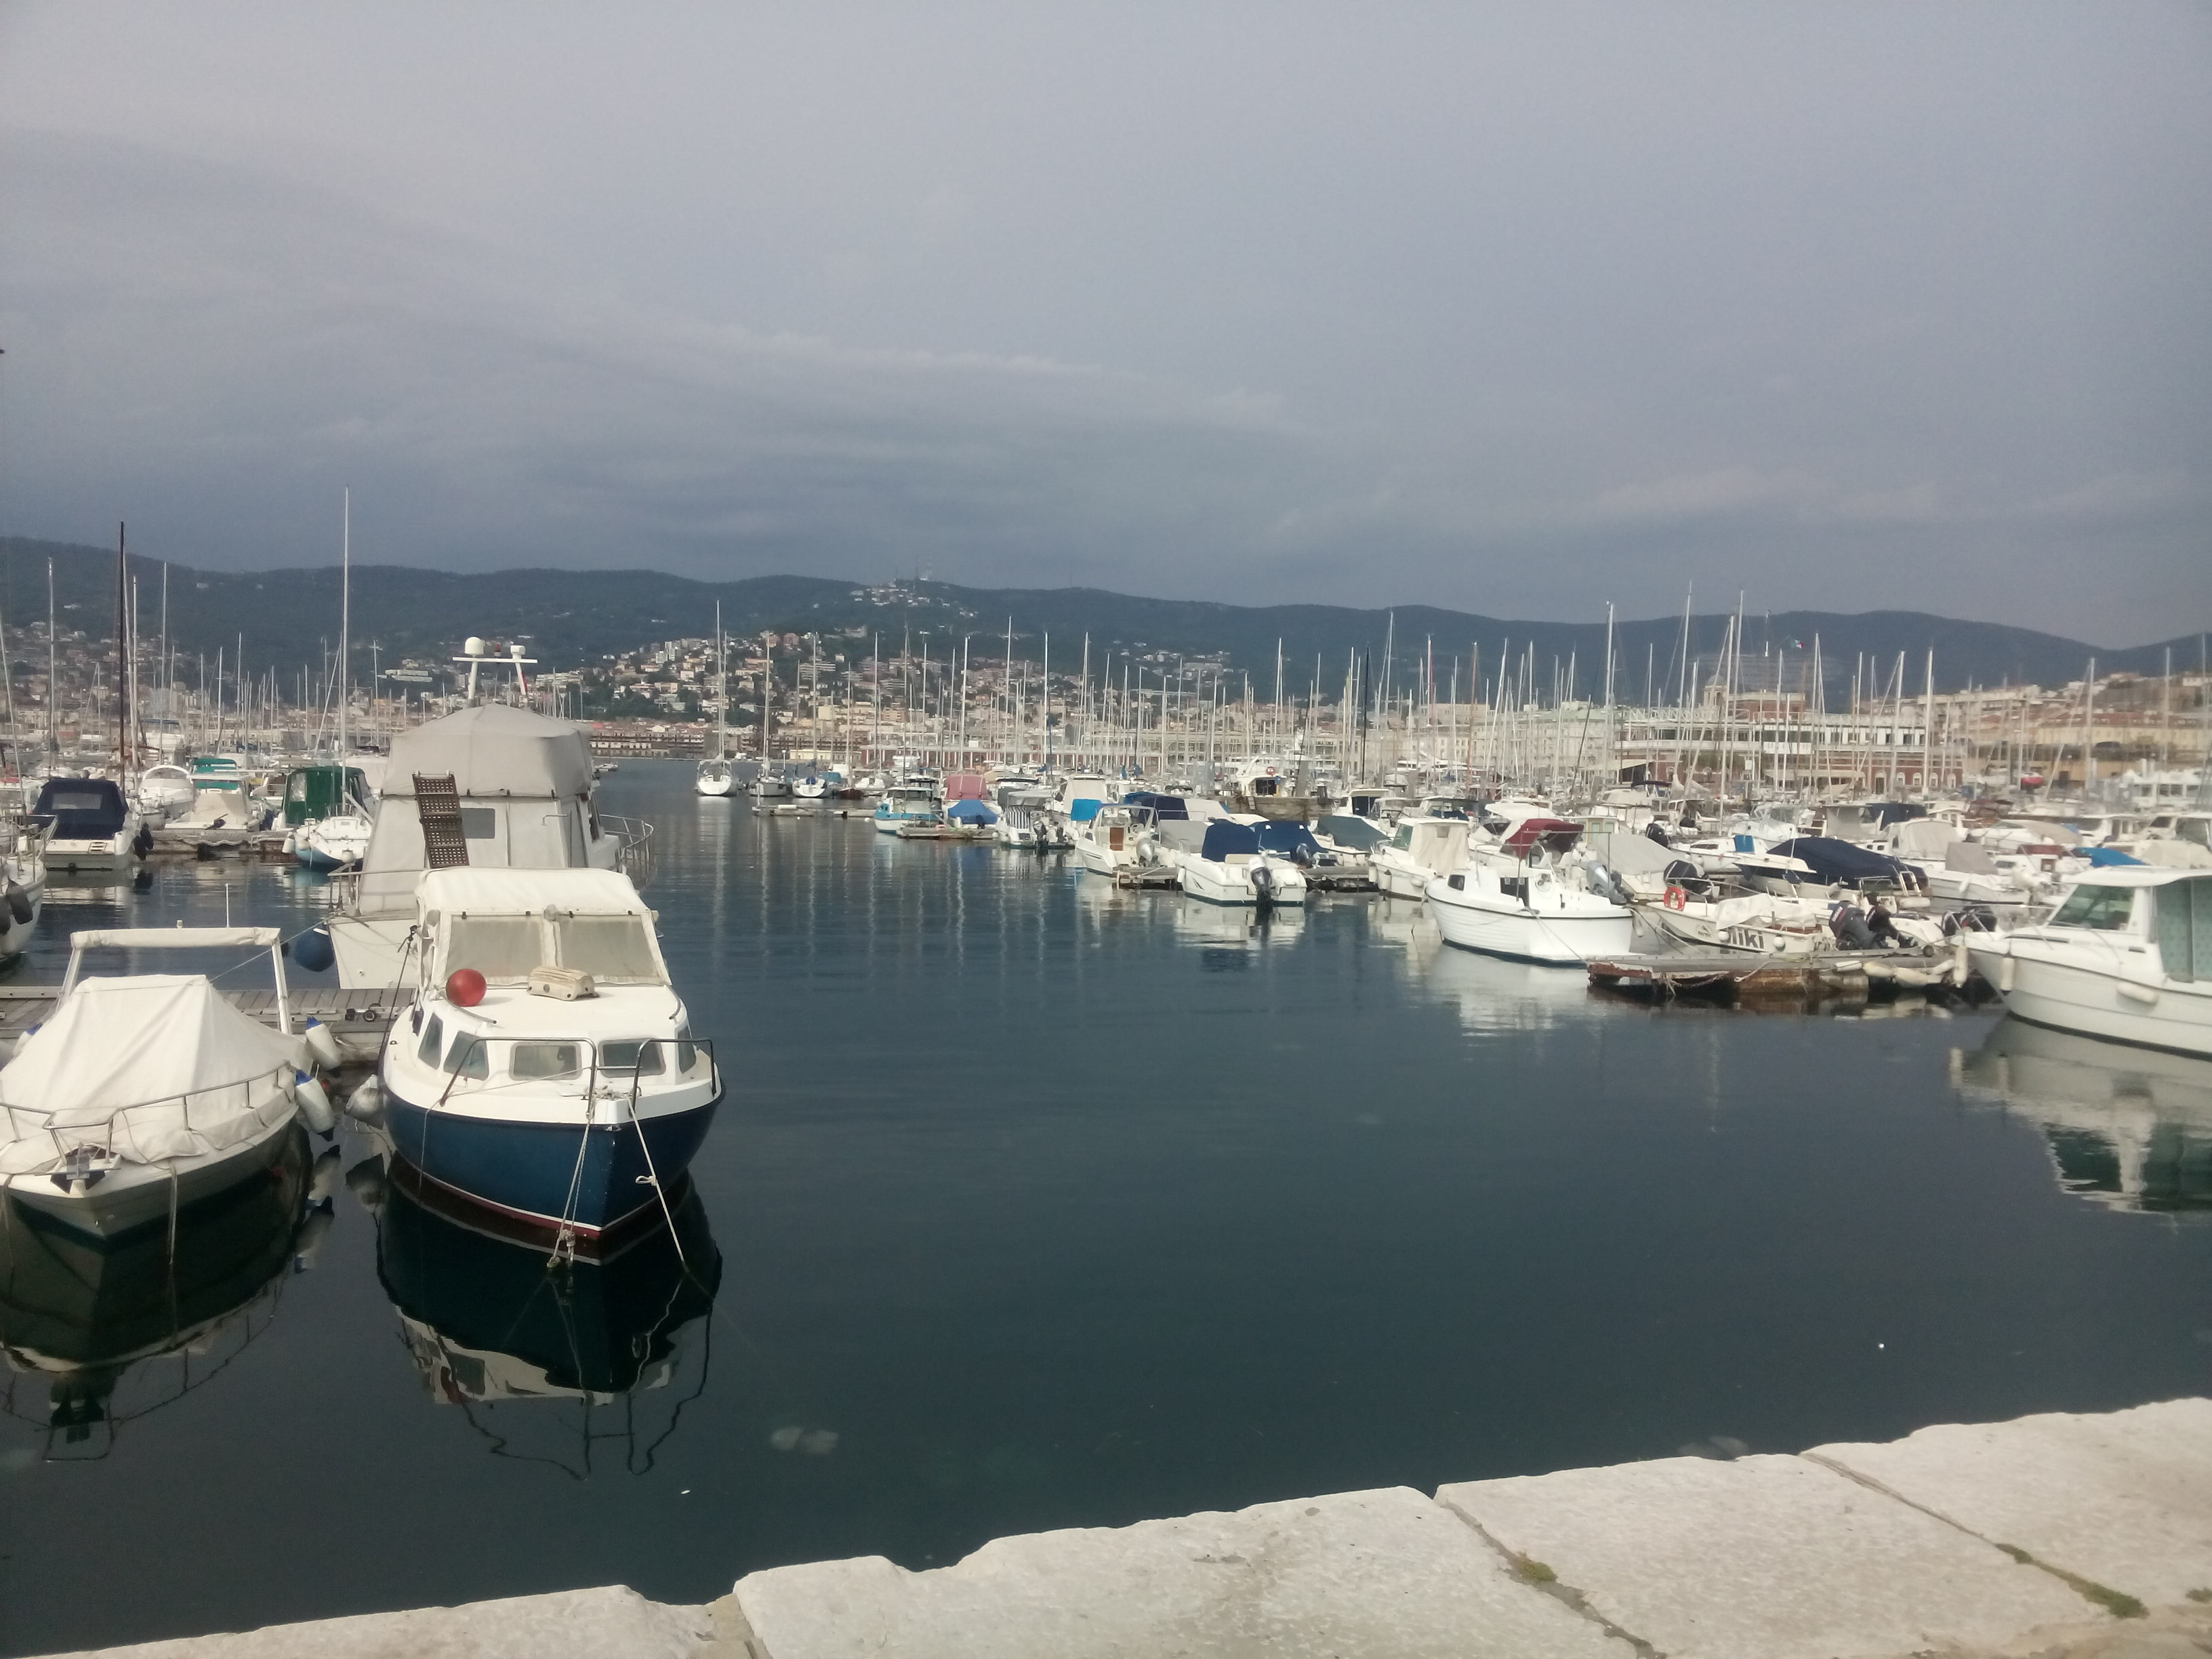 Many small white boats in a harbour with Trieste in the background